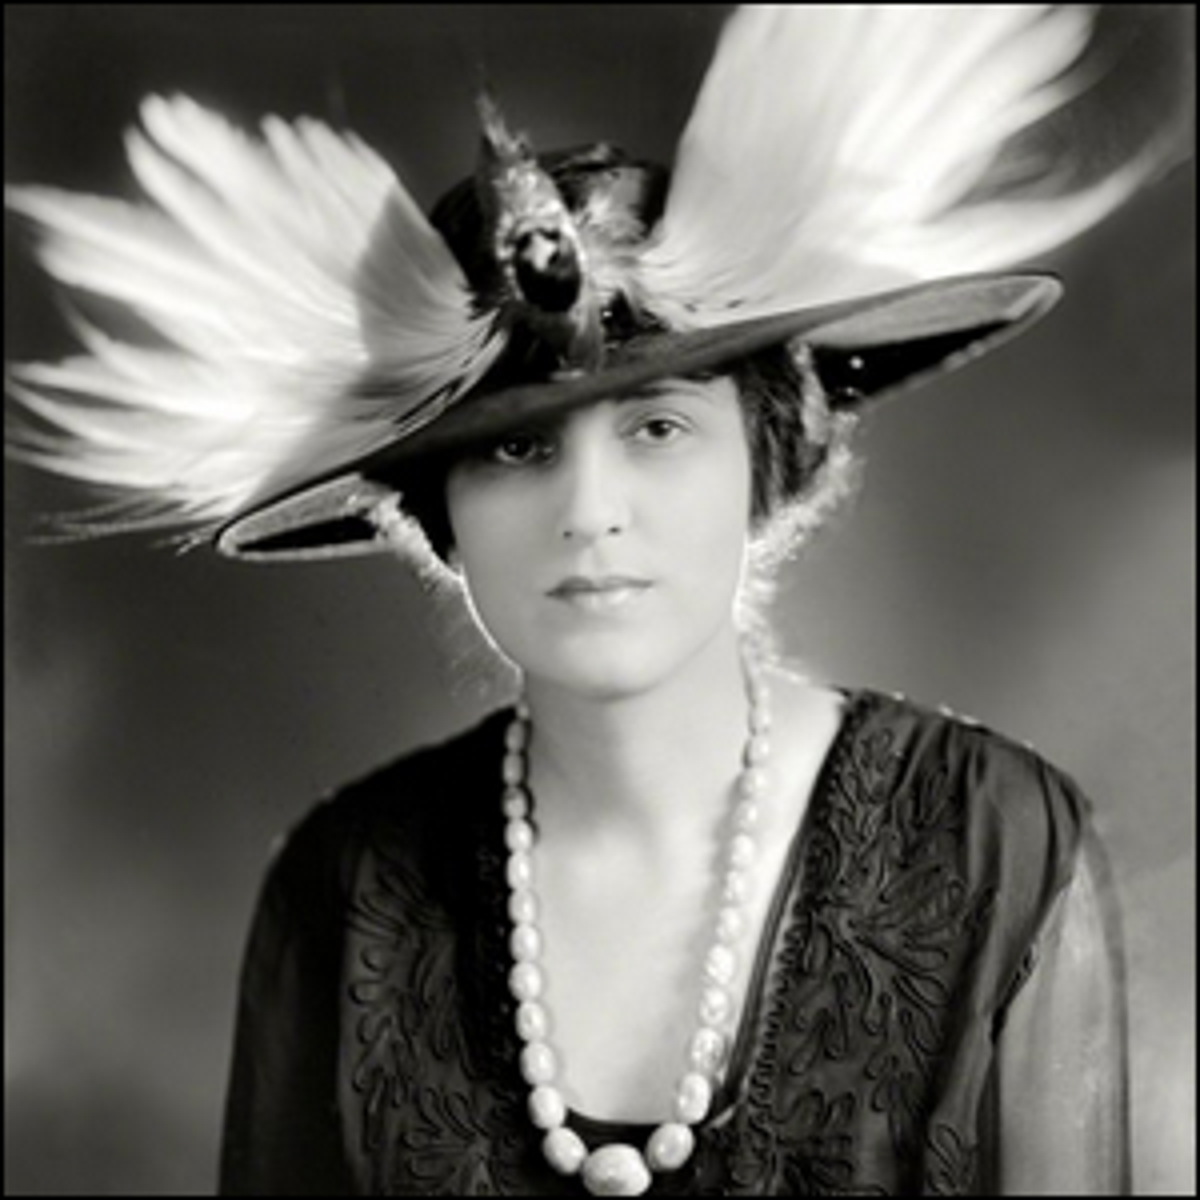 A photograph of an early 20th century woman wearing an elaborate bird hat.